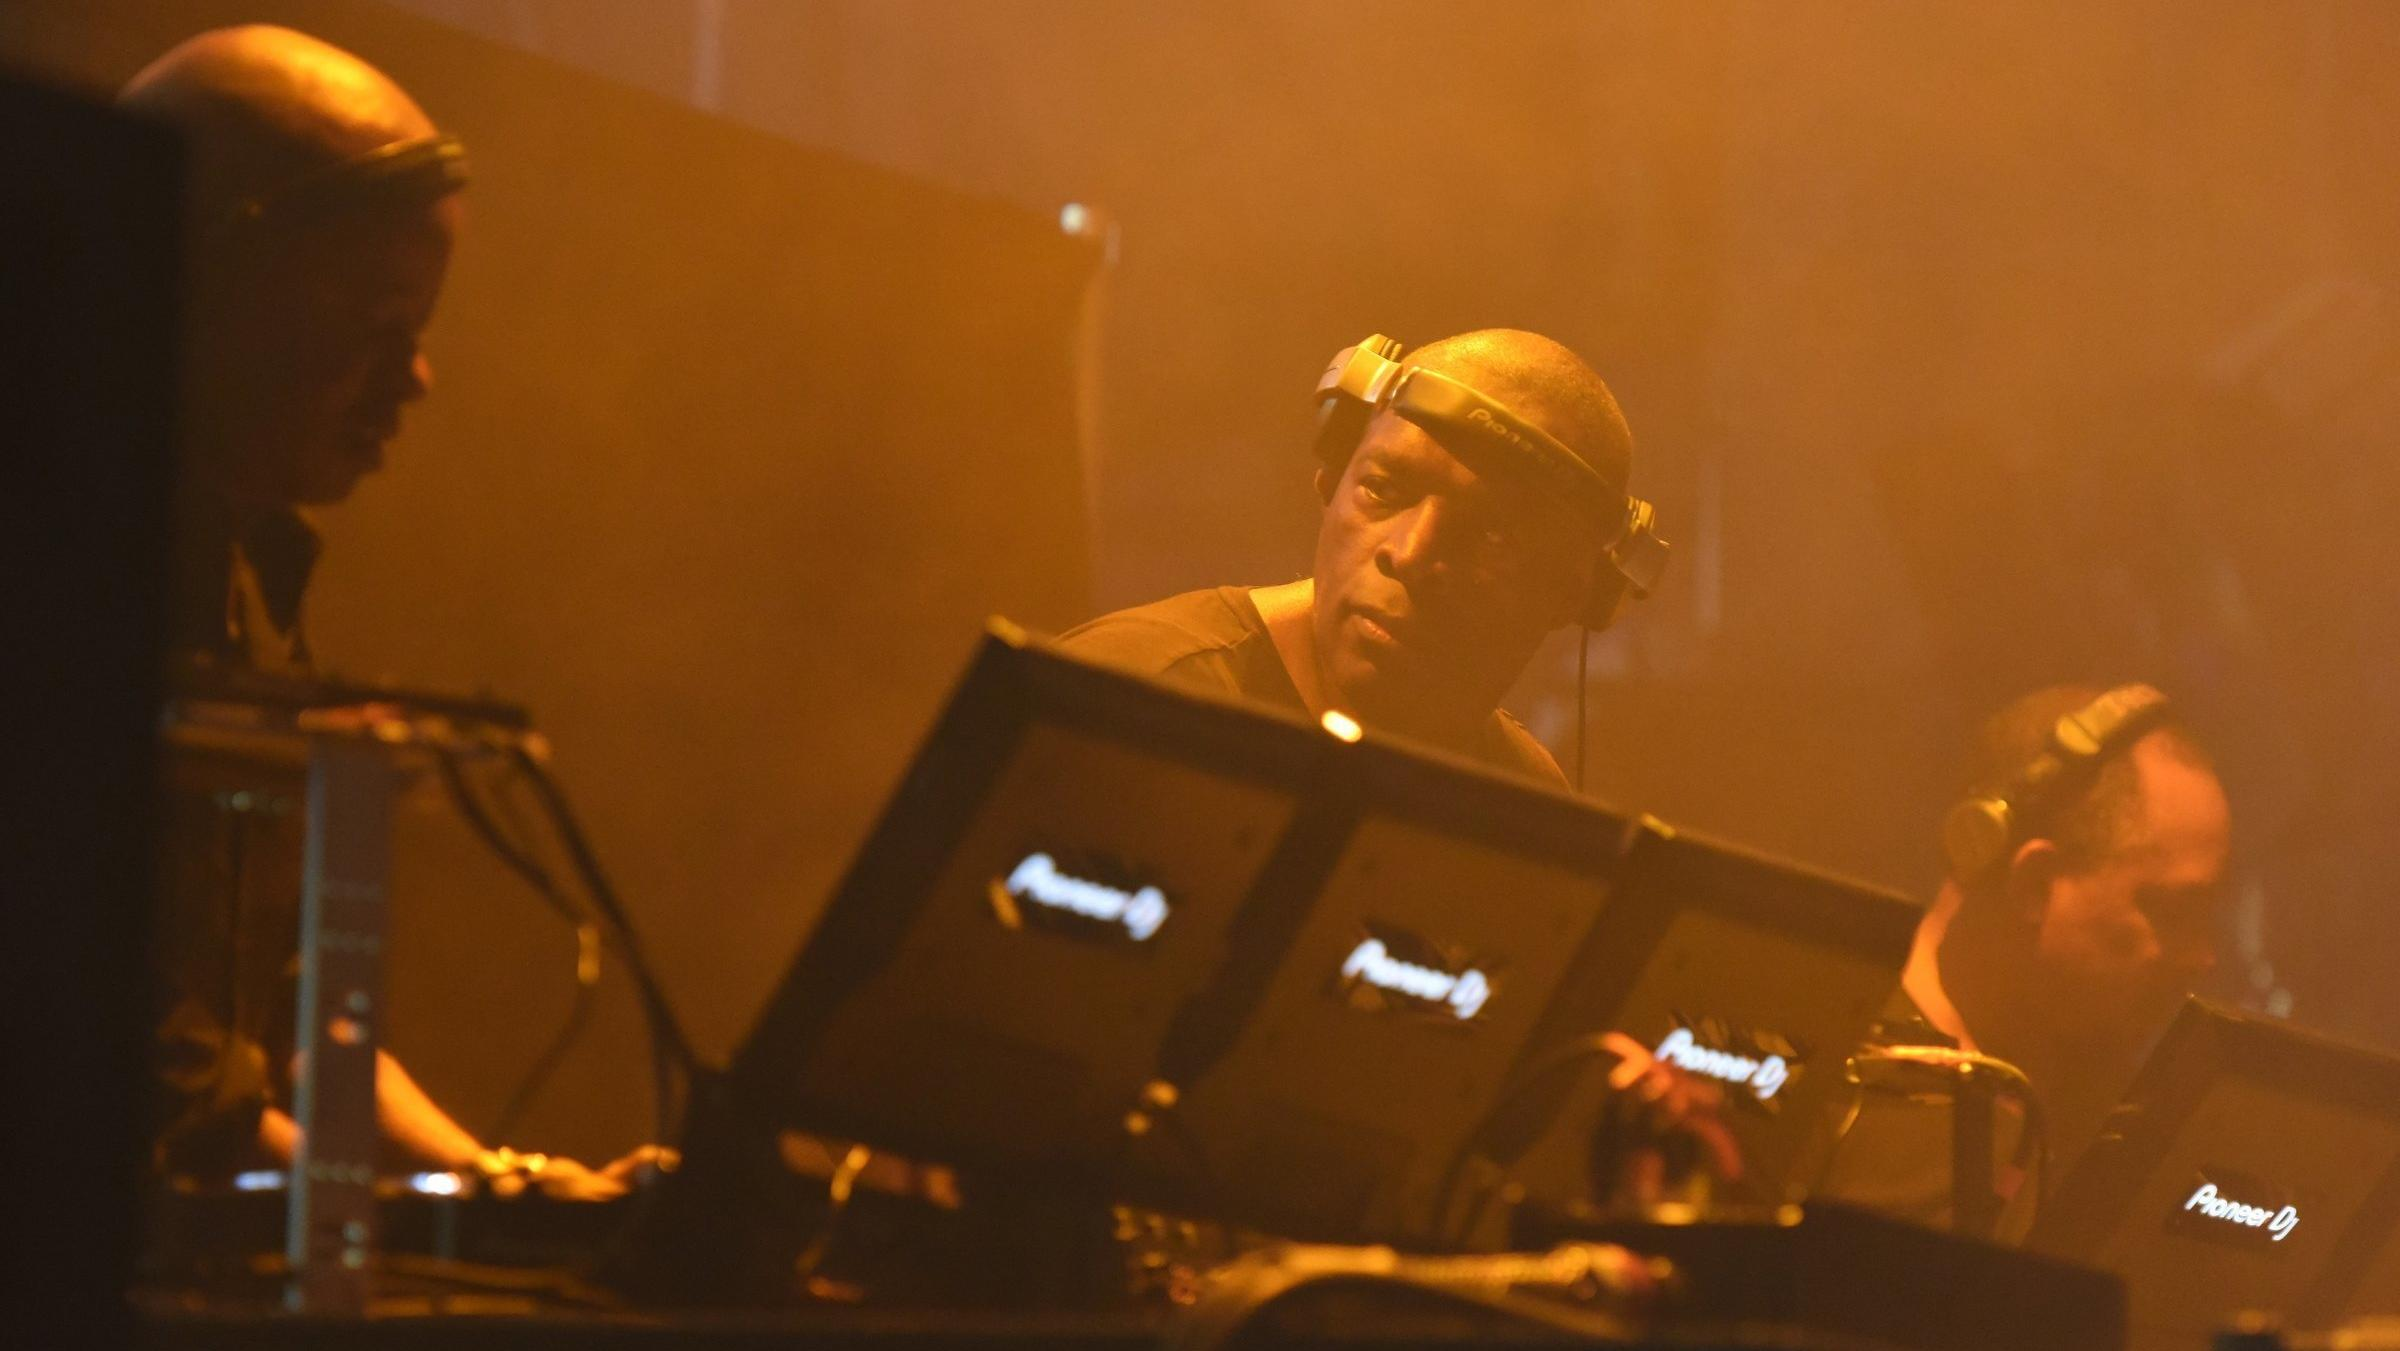 Juan Atkins, Kevin Saunderson and Derrick May beim Auflegen